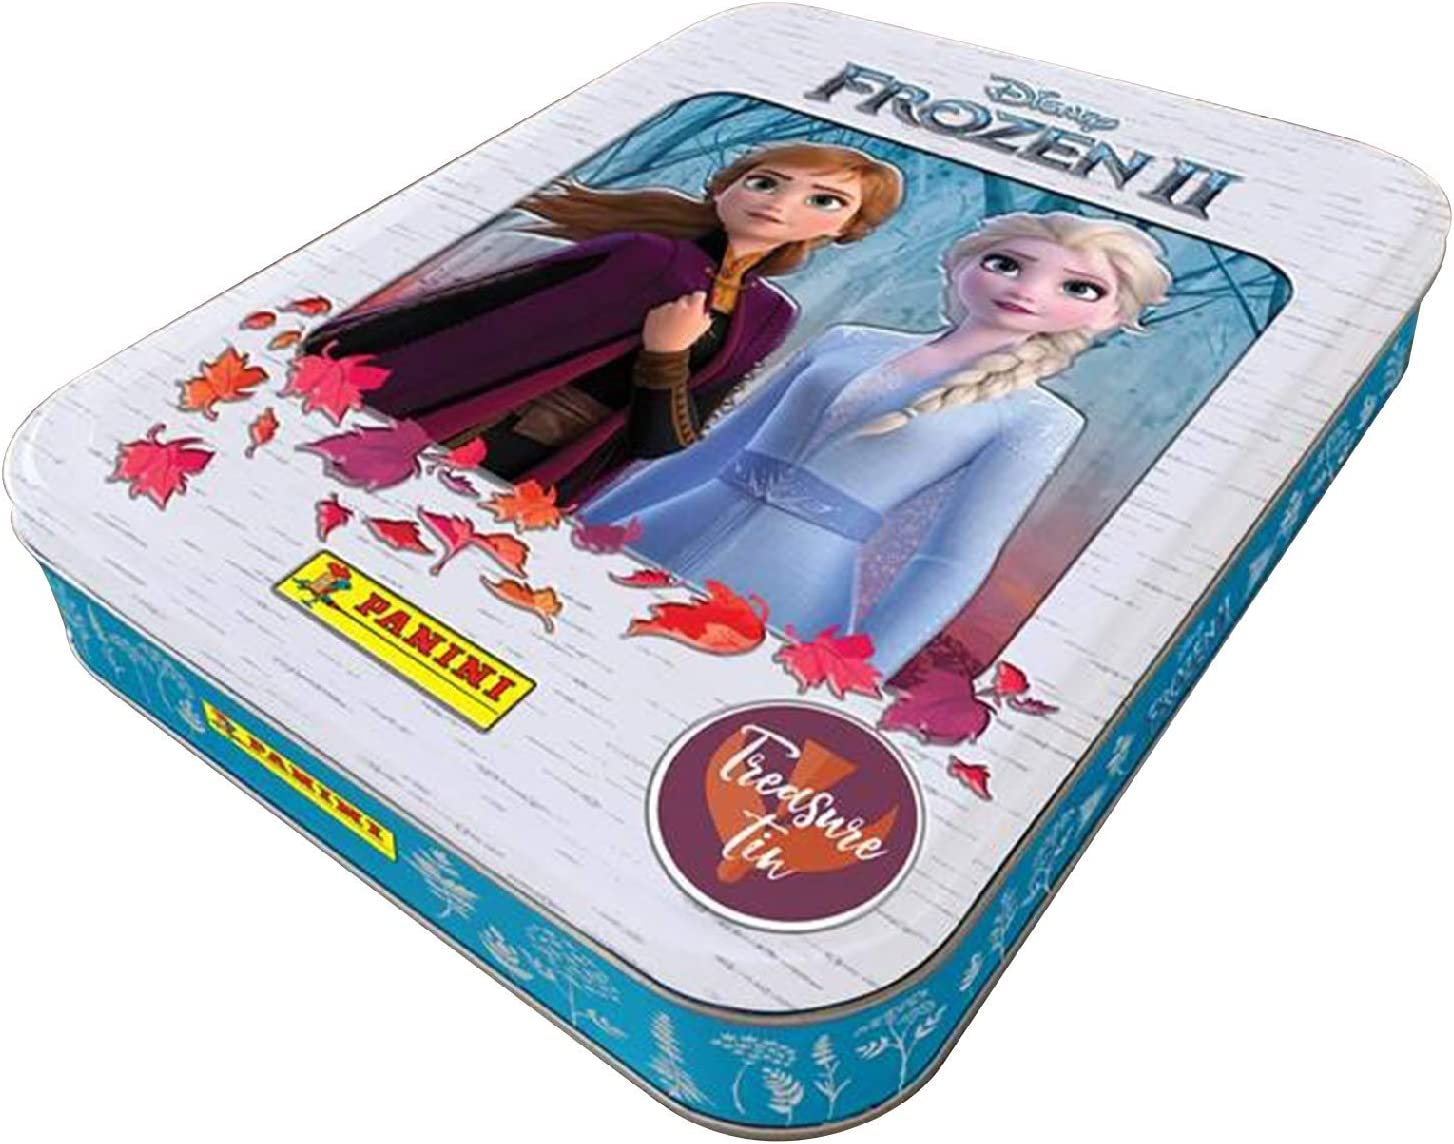 PANINI Olaf Frozen adventure stickers 50 Sealed Packets